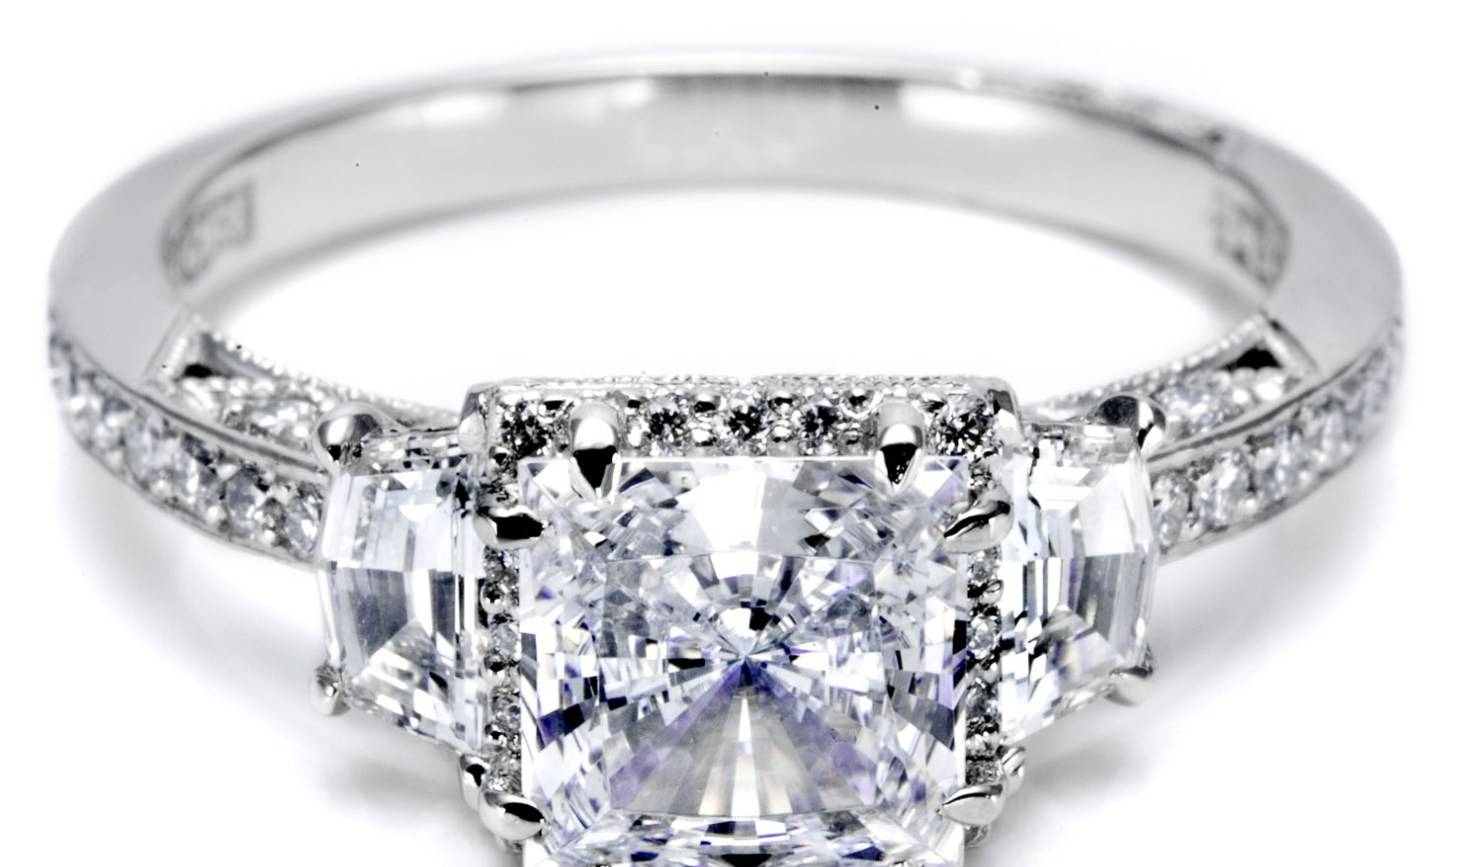 Jewelry Rings: Engagement Rings And Wedding Band Sets Stunning Intended For Cheap Diamond Wedding Bands (View 10 of 15)